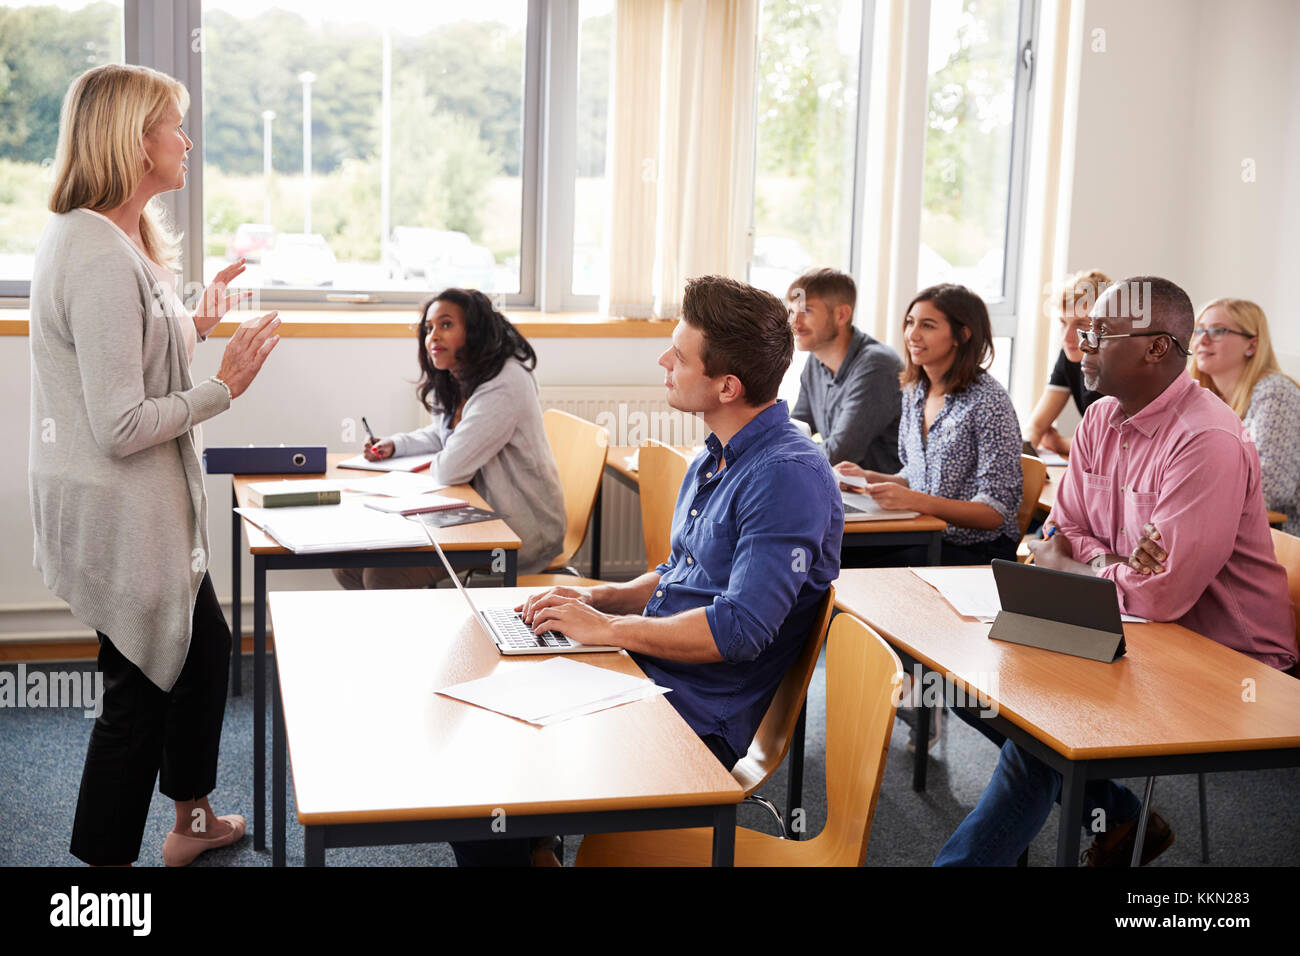 Female Tutor Teaching Class Of Mature Students - Stock Image